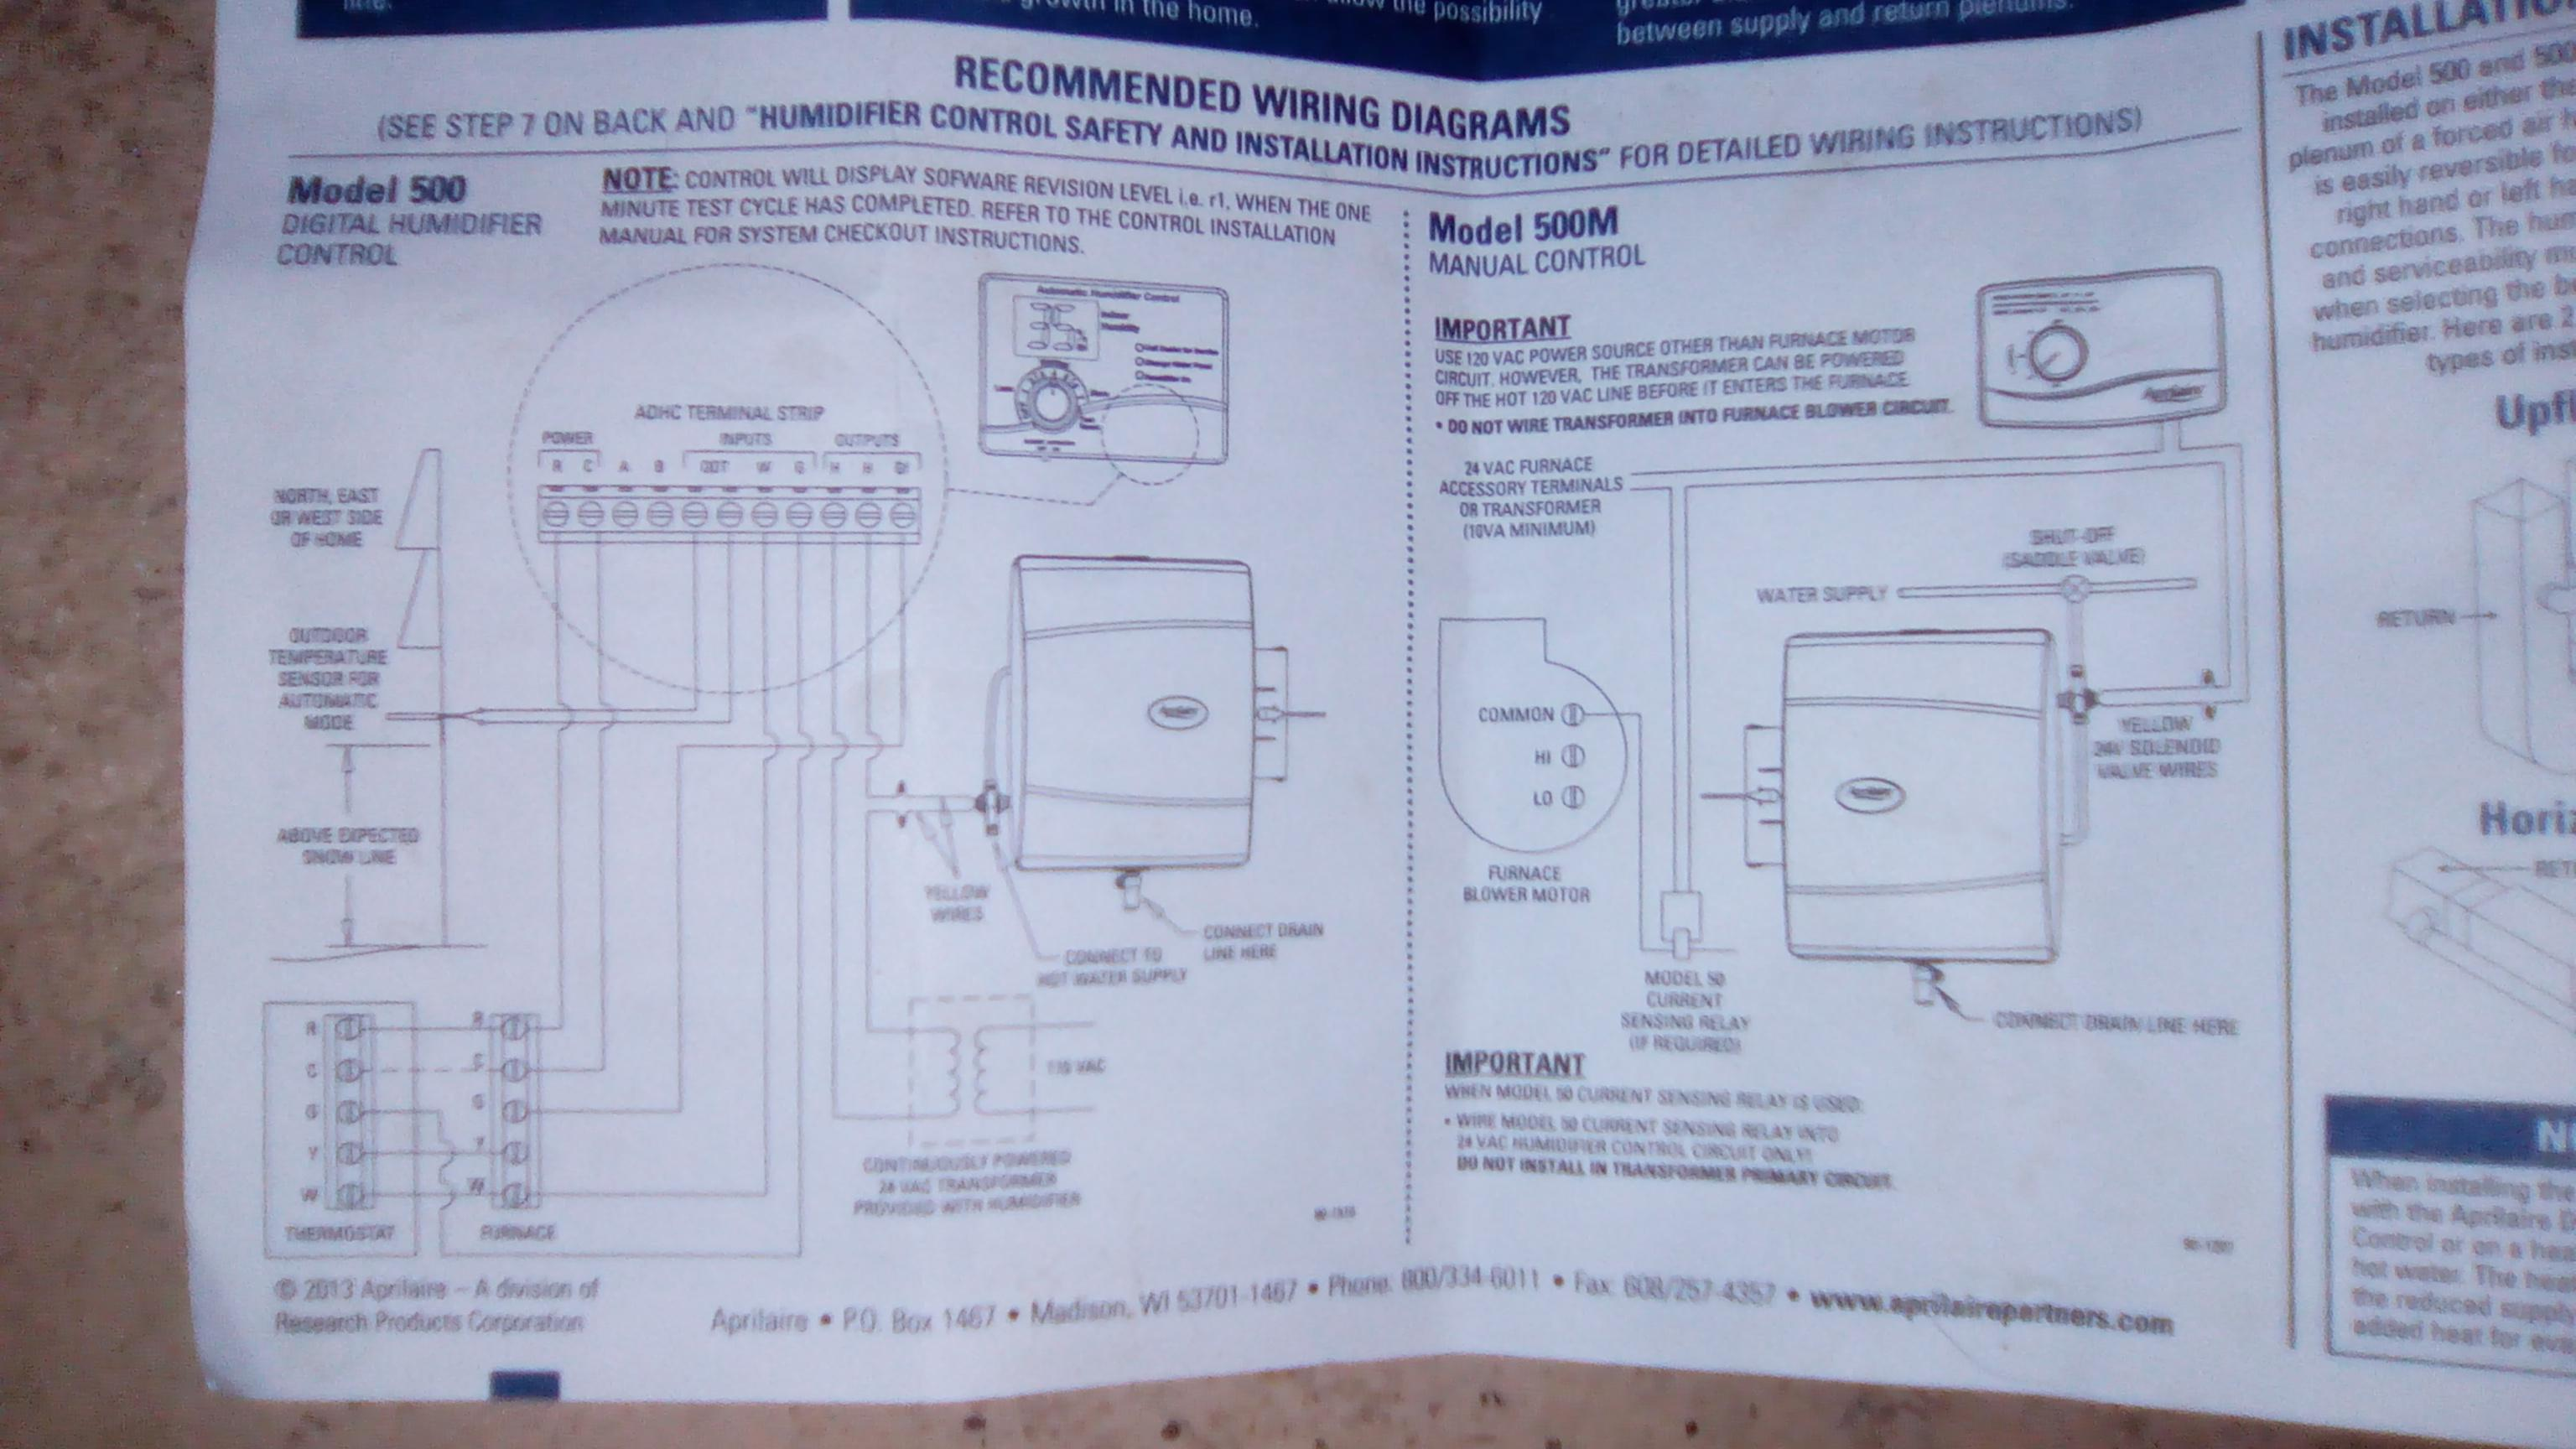 nest humidifier wiring diagram 240v single phase motor aprilaire 500 on an amana ams8 furnace